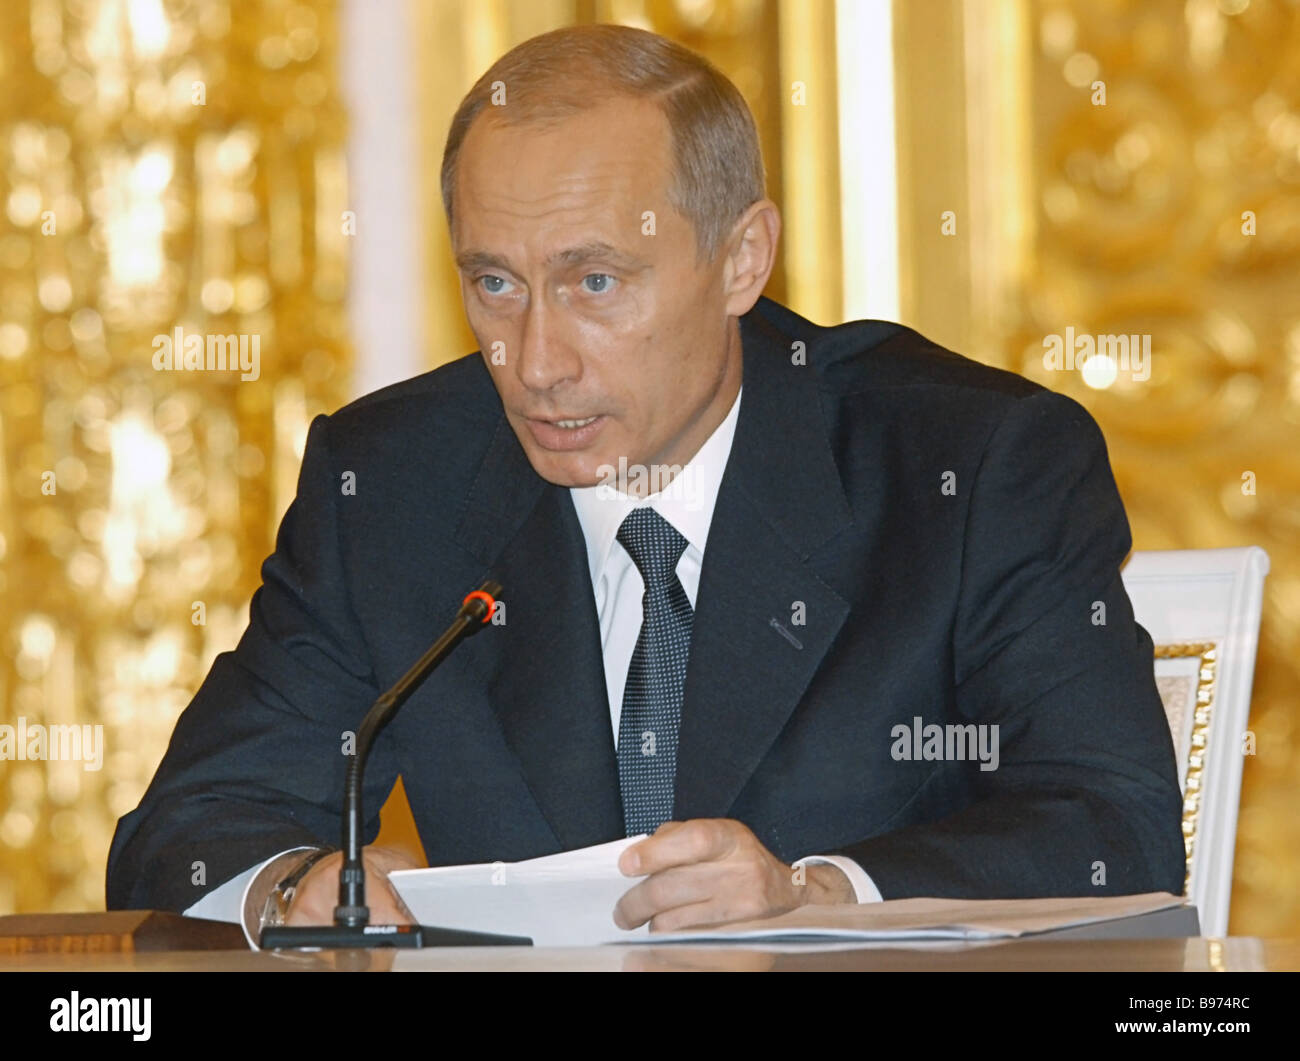 Russian President Vladimir Putin in the Kremlin chairing a State Council meeting - Stock Image